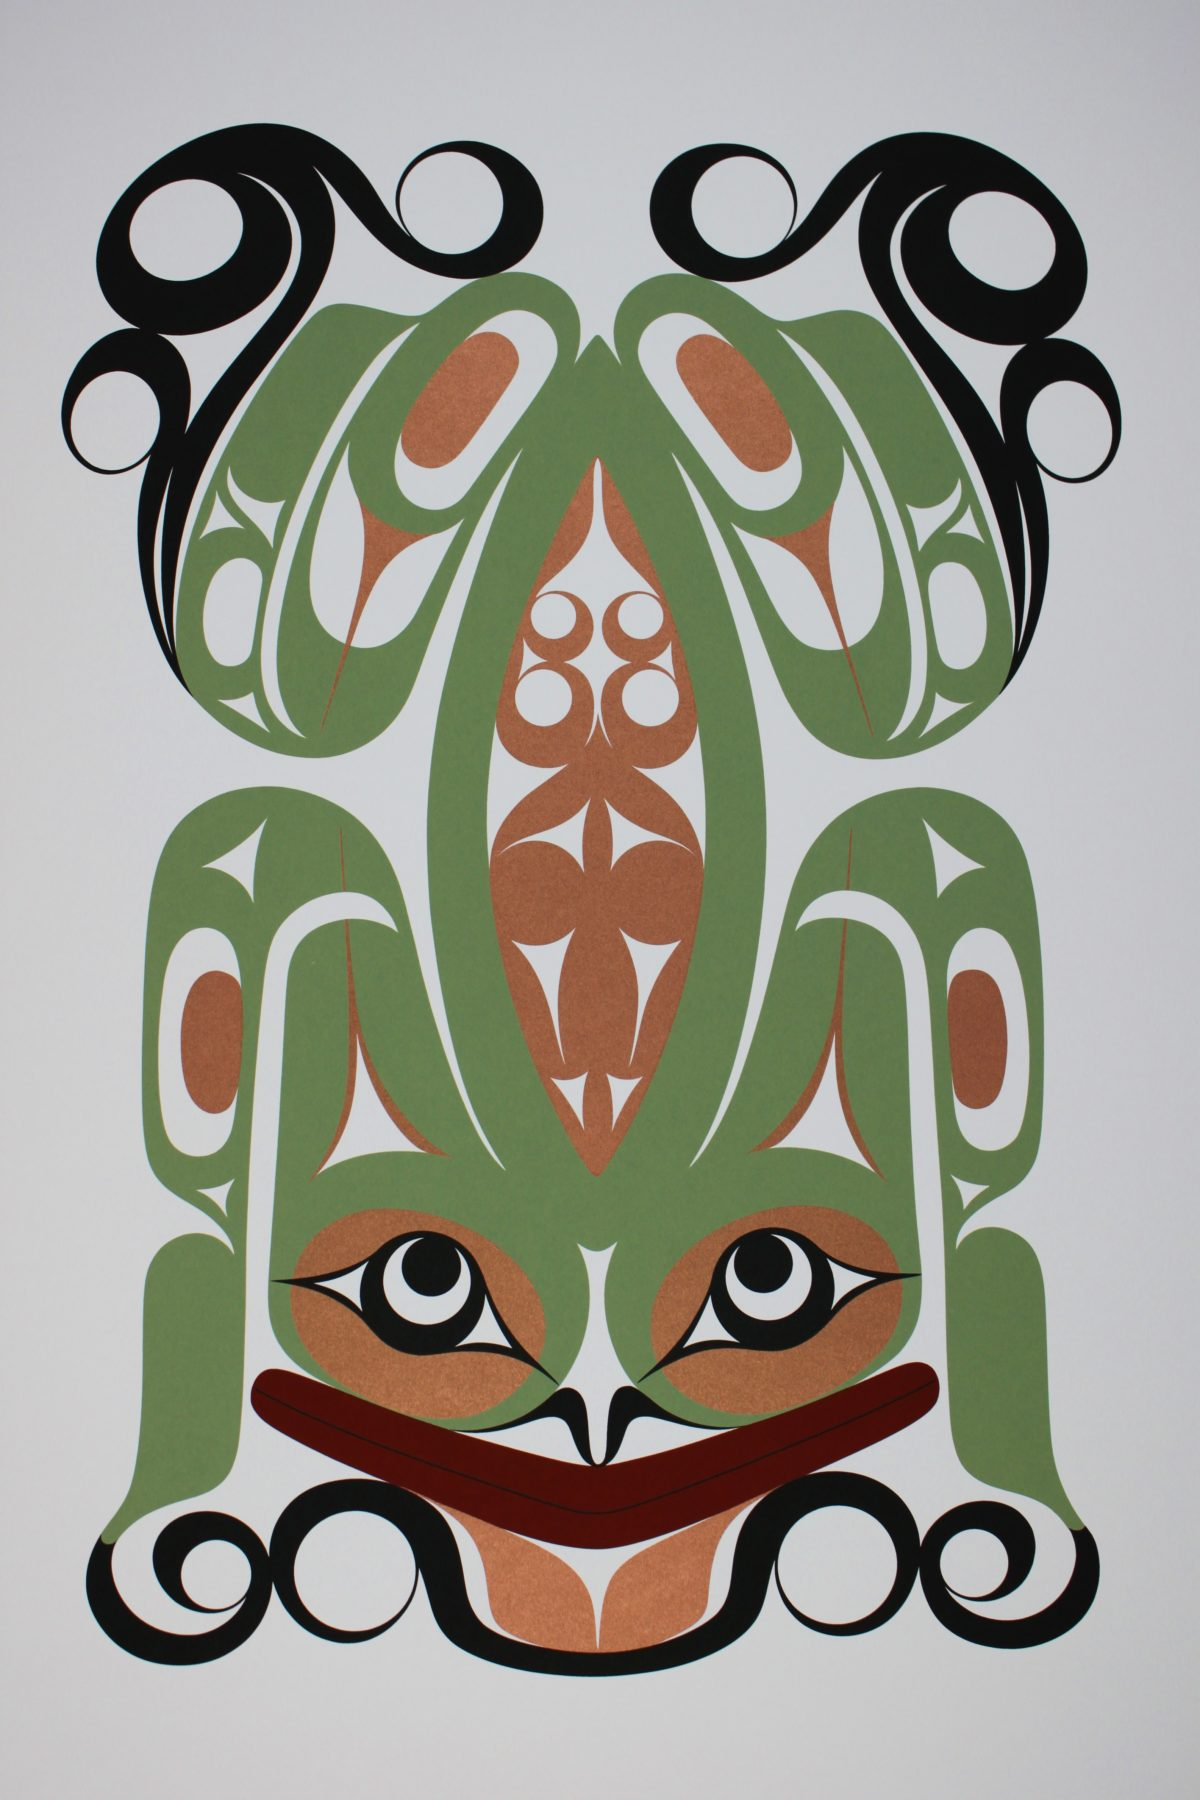 Wak'es (Frog), Francis Dick, Native Print, Limited Edition Screen Print, Serigraph